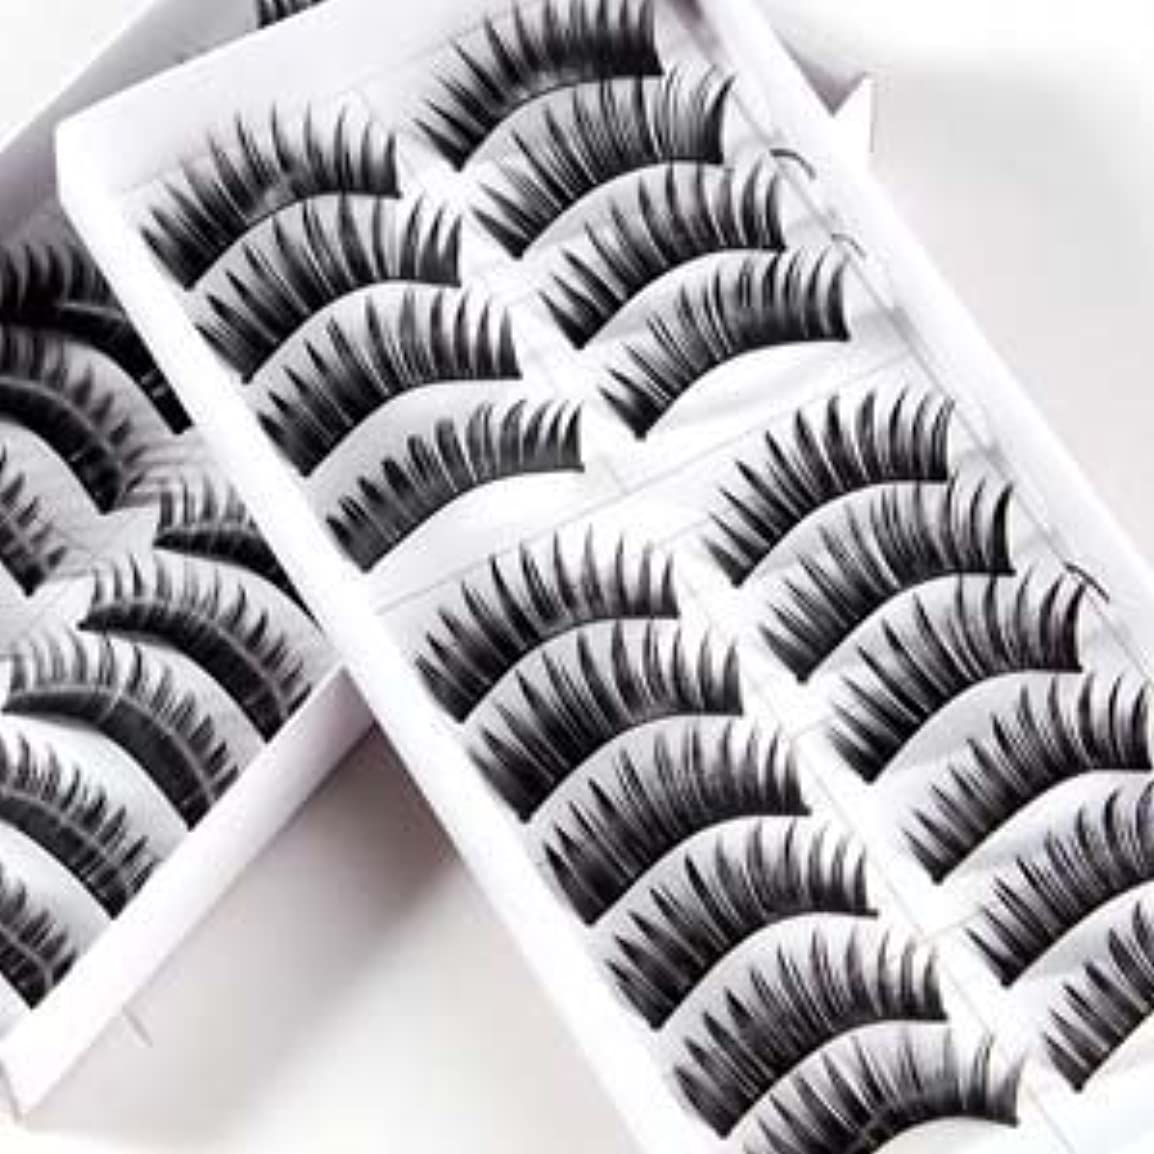 分析する破壊的クスクス20 Pairs Black Thick Natural Long Makeup False Fake Eyelash Eye Lashes by Boolavard? TM